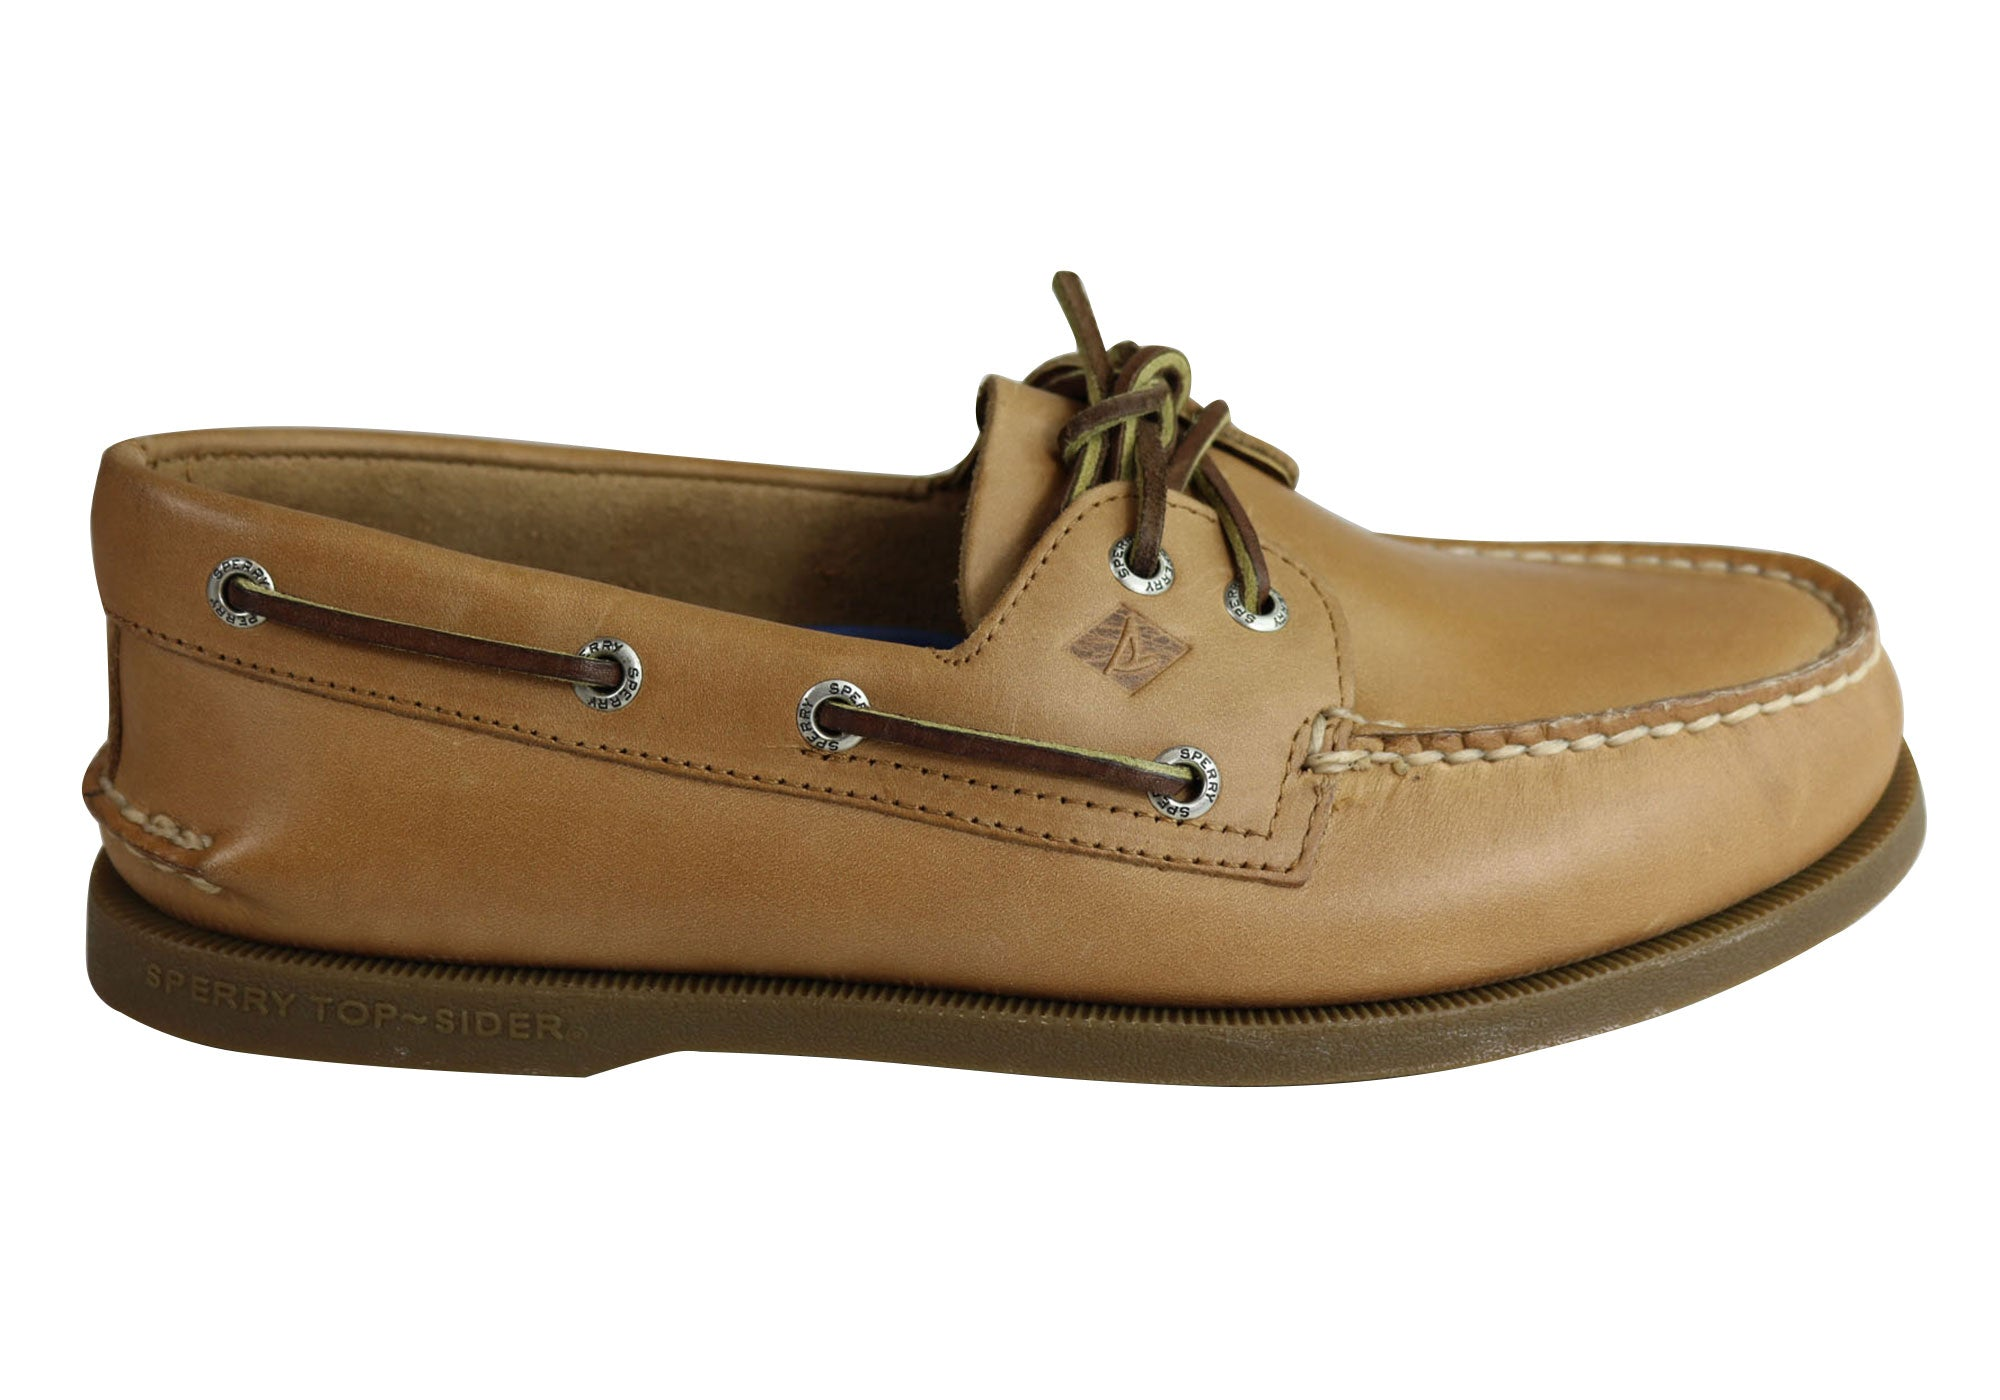 cae0817a51 Home Sperry Mens A 0 2 Eye Leather Lace Up Comfortable Wide Fit Boat Shoes.  Sahara ...